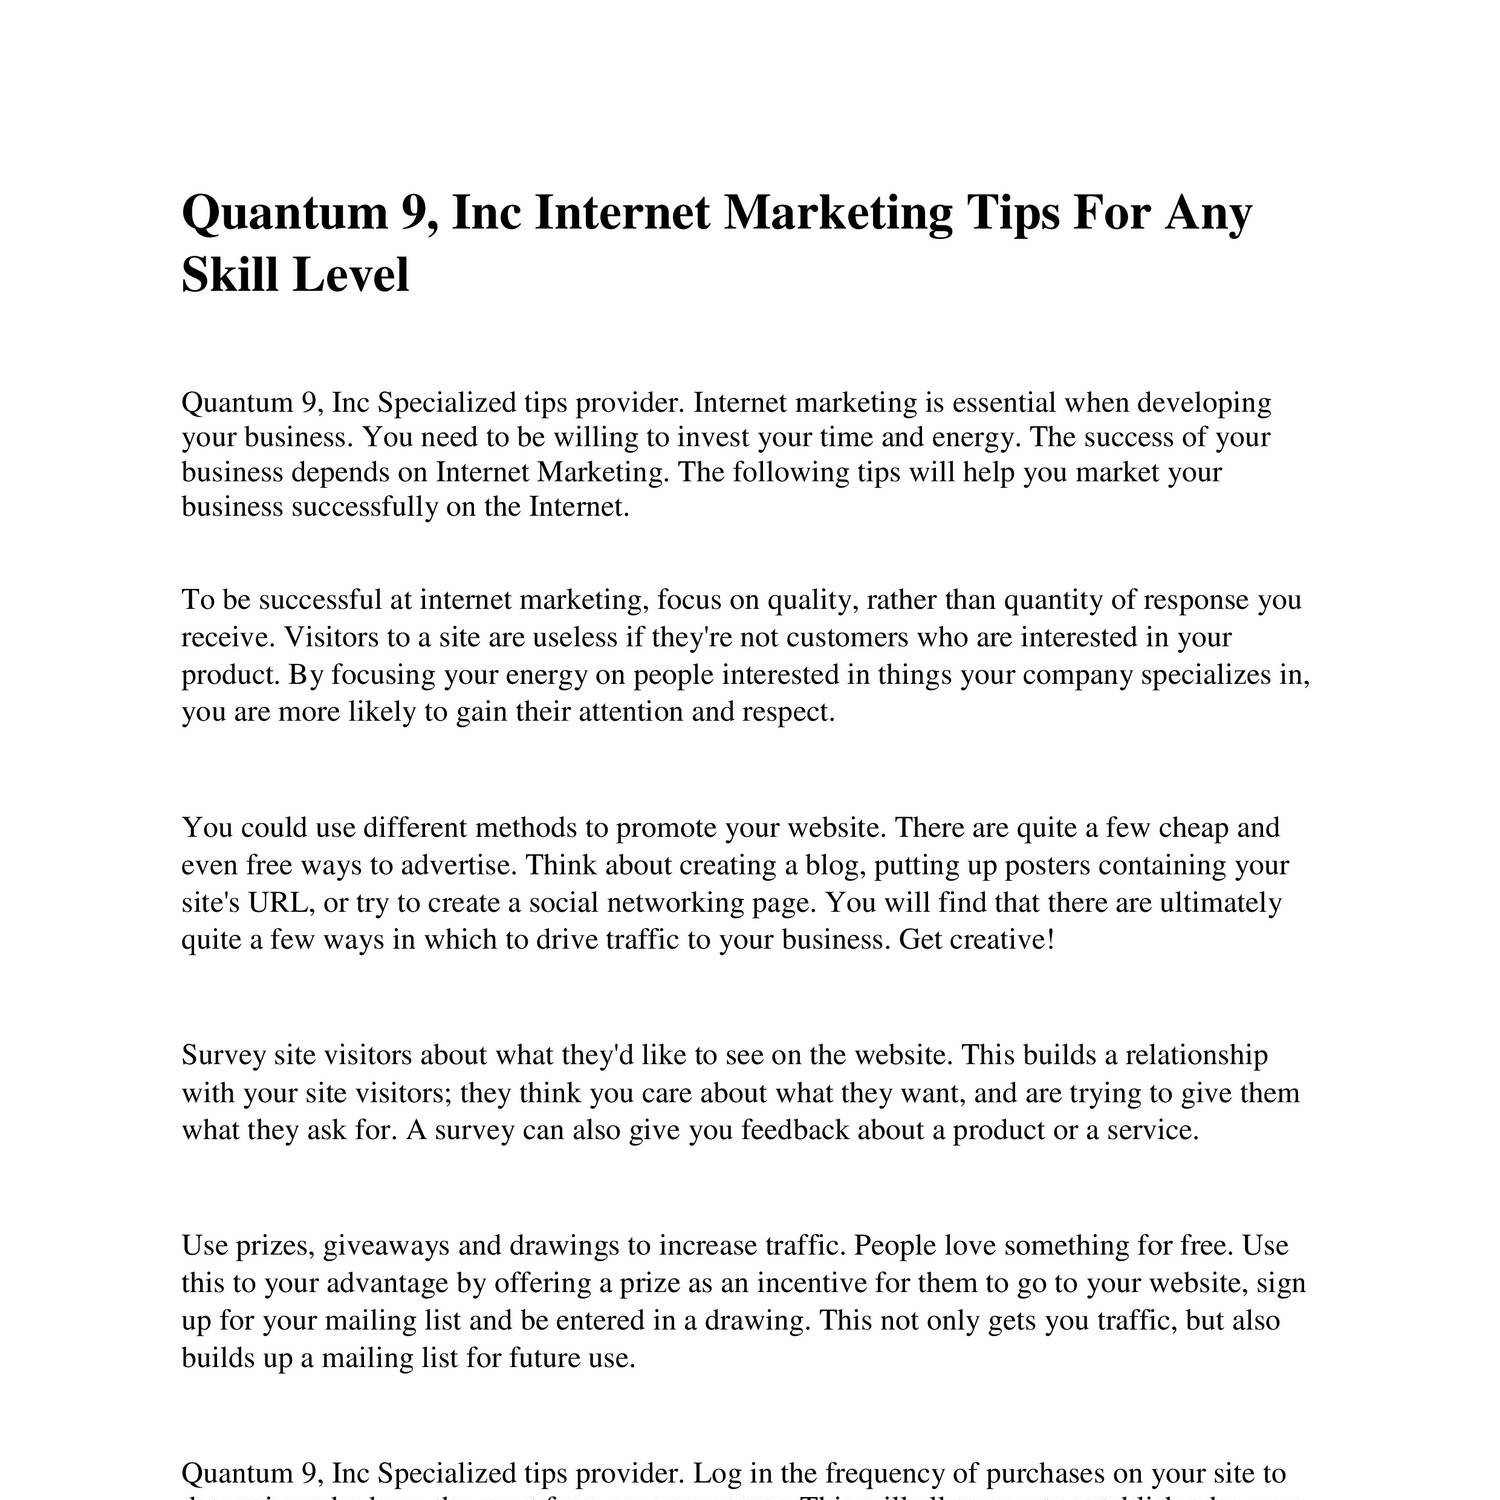 Quantum 9 Inc Internet Marketing Tips For Any Skill Level